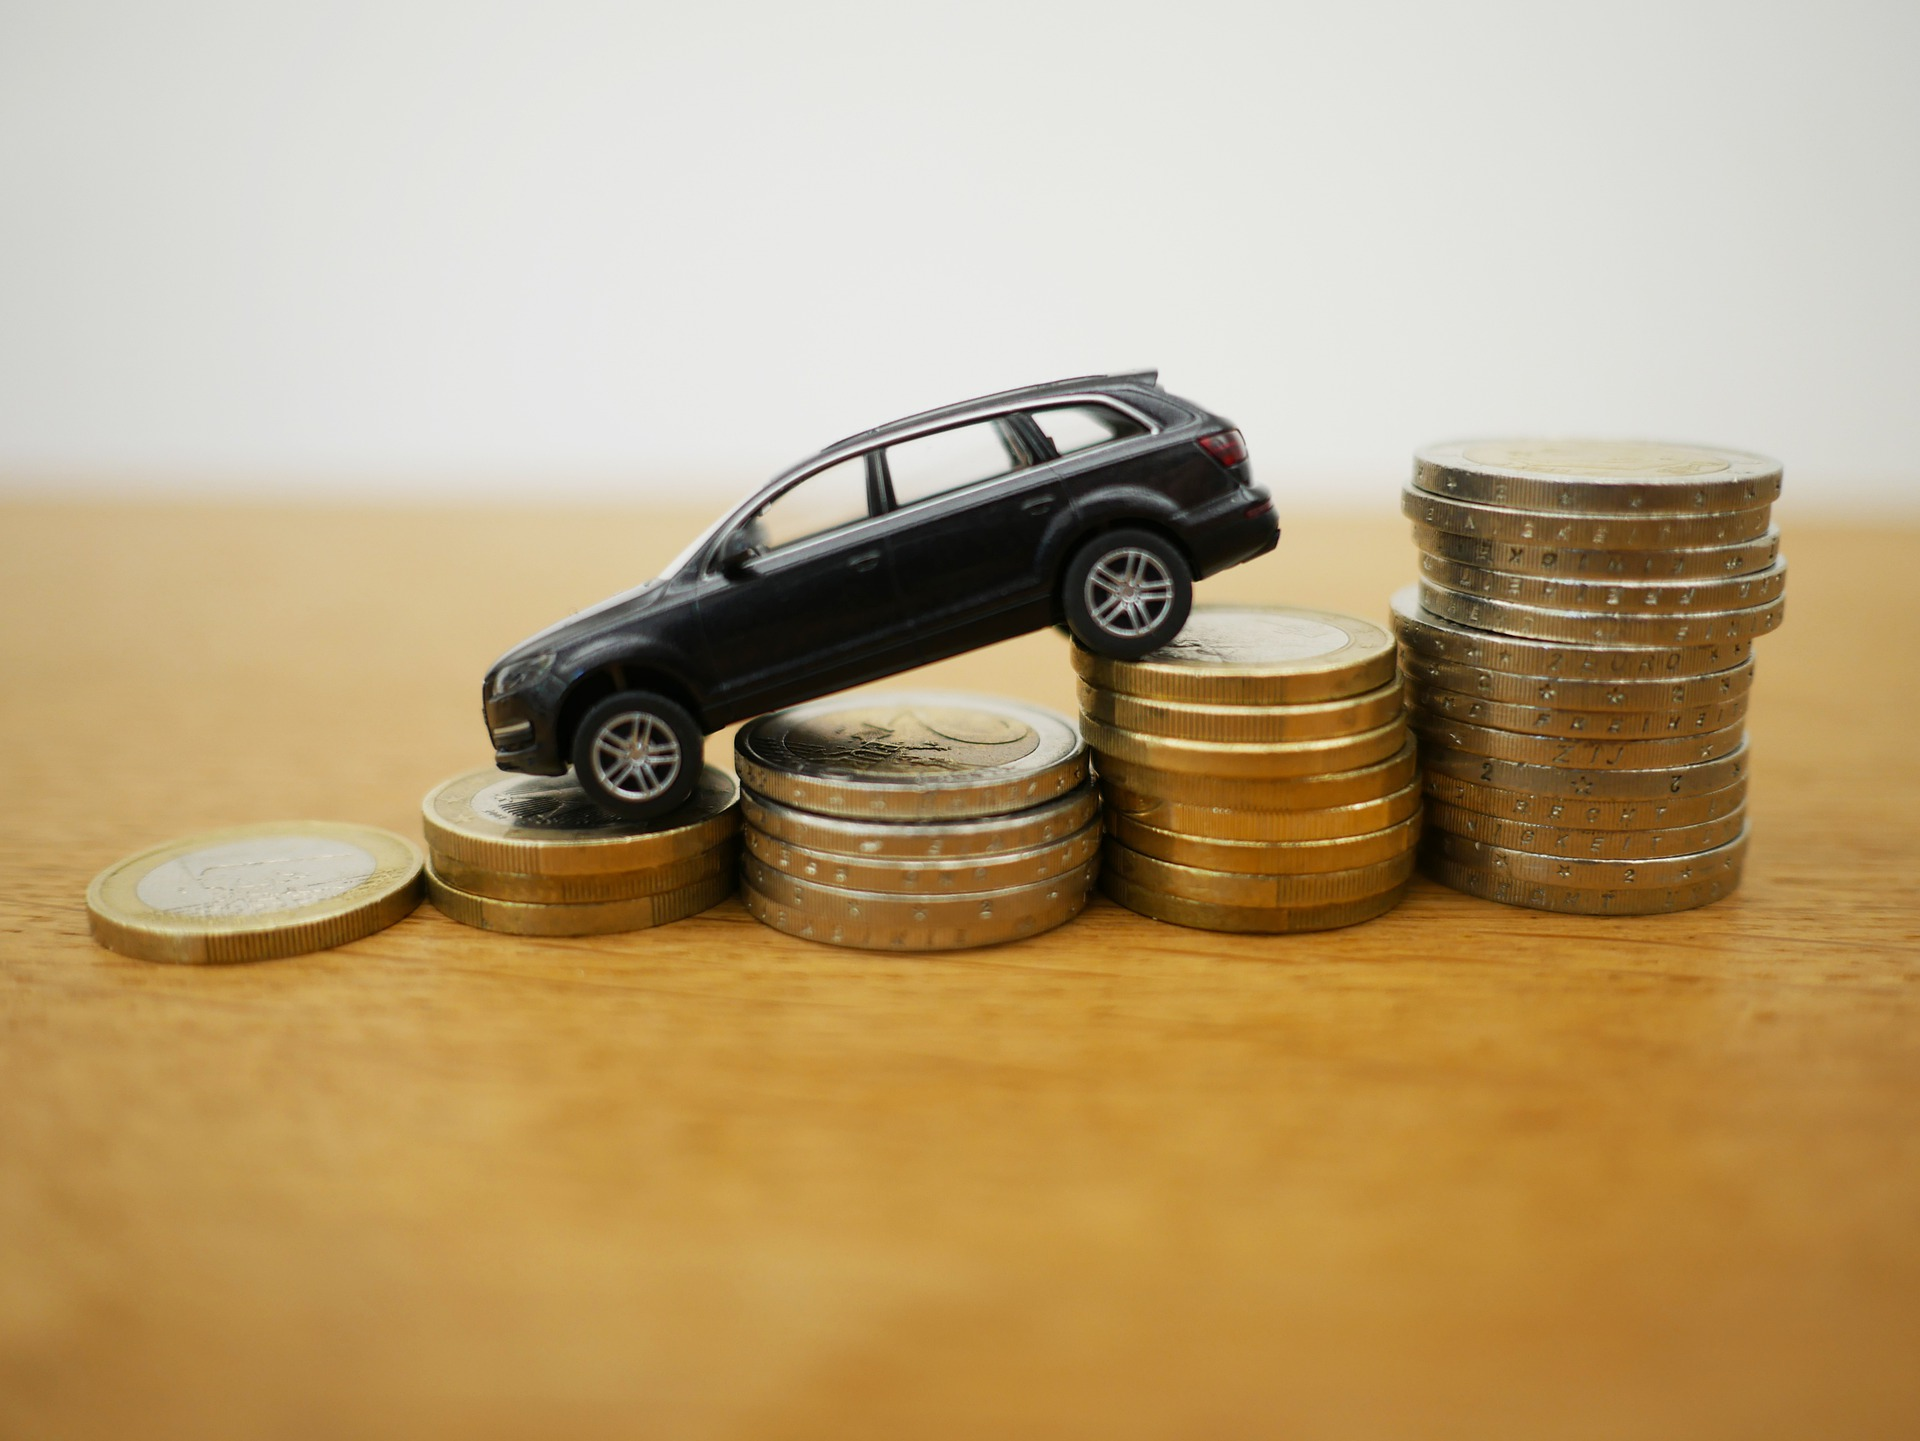 Auto retail sales drop 55% in May as COVID puts brake on vehicle registrations: FADA According to automobile dealers' body FADA, amidst the pandemic second wave, automobile retail sales in the country as compared to April 2021, declined by 55% in May 2021 because lockdowns in various states affected the vehicle registrations. Because of the pandemic-led curbs showrooms across various states, showrooms were mandatorily shut. In April this year, there was a total of 11,85,374 unit registrations across categories while this dropped drastically to 5,35,855 units in May. The vehicle registration data that was collected by the FADA, from 1,294 out of the 1,497 regional transport offices (RTOs), showed that as compared to the 2,08,883 units in April, there was a decline in passenger vehicle by 59% in May this year, while two-wheeler vehicle sales also declined by 53%, dropping from 8,65,134 units in April to 4,10,757 units in May. There was also a drop in the sales of commercial vehicles (by 66%), three-wheeler vehicles (by 76%), tractors (by 57%). According to FADA President Vinkesh Gulati, the auto retail fraternity is in dreadful need of support amid business disordering caused by the pandemic. FADA has humbly requested all the OEMs to announce any financial assistance to their channel partners. Vinkesh Gulati also appealed to the government that rather than restructuring, banks should allow a suspension of 90 days to all types of dealers without keeping a turnover limit, it is needed as auto retail trade works on the principle where dealers get capitalized from financial institutions in terms of inventory financing for 30-45 days to buy vehicles from auto OEMs. He also said that due to the lockdown already lasting over 30-45 days and will continue in south India, the revenue of dealers was impacted because of minimum sales, and due to that dealers will not be able to pay back their due loan installment which would lead to default. And This will ultimately harm dealers'